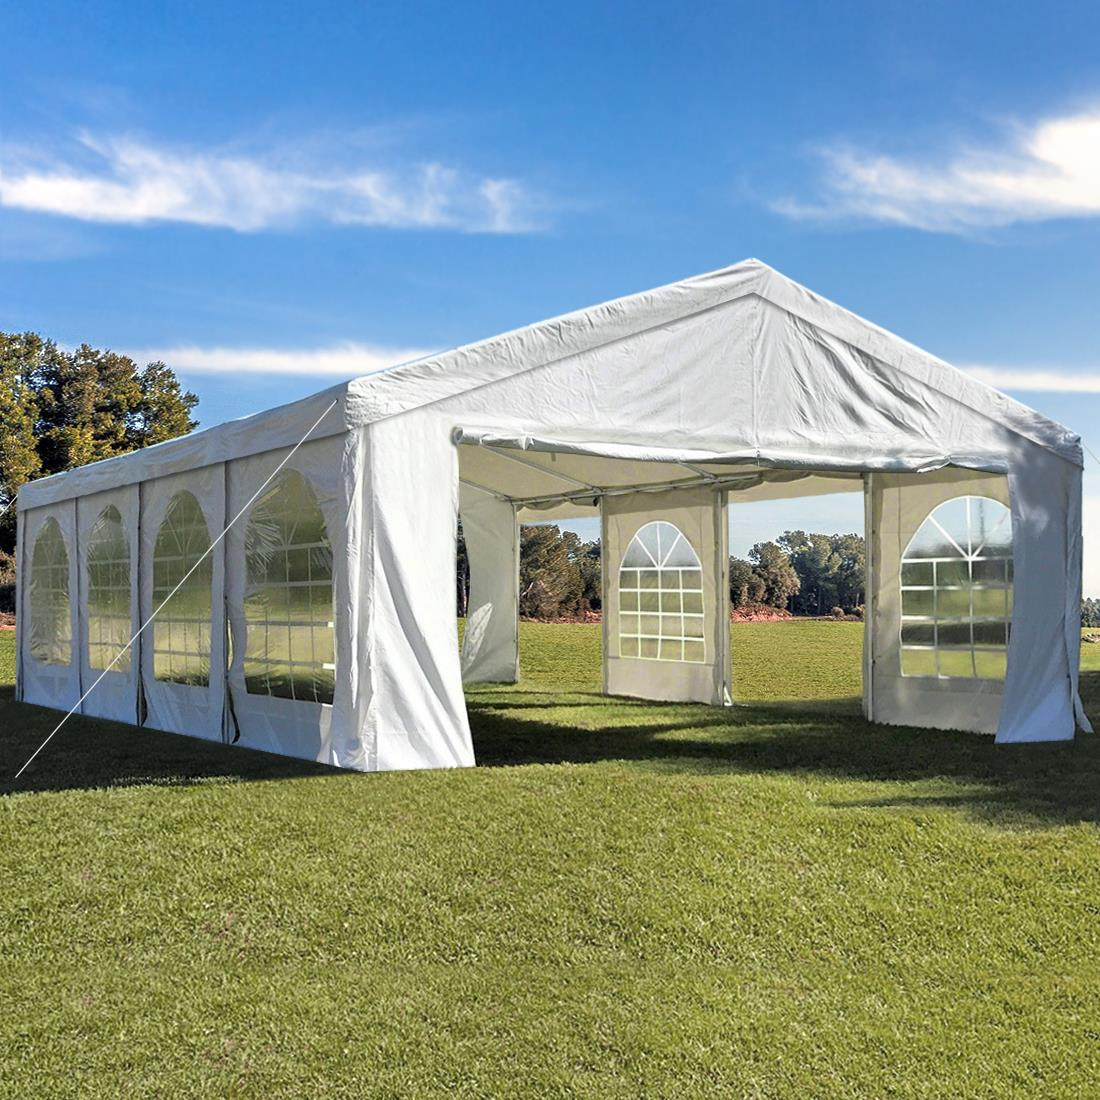 Peaktop-Heavy-Duty-Party-Tent-Event-Canopy-Gazebo-Wedding-Tent-With-Carry-Bag thumbnail 5